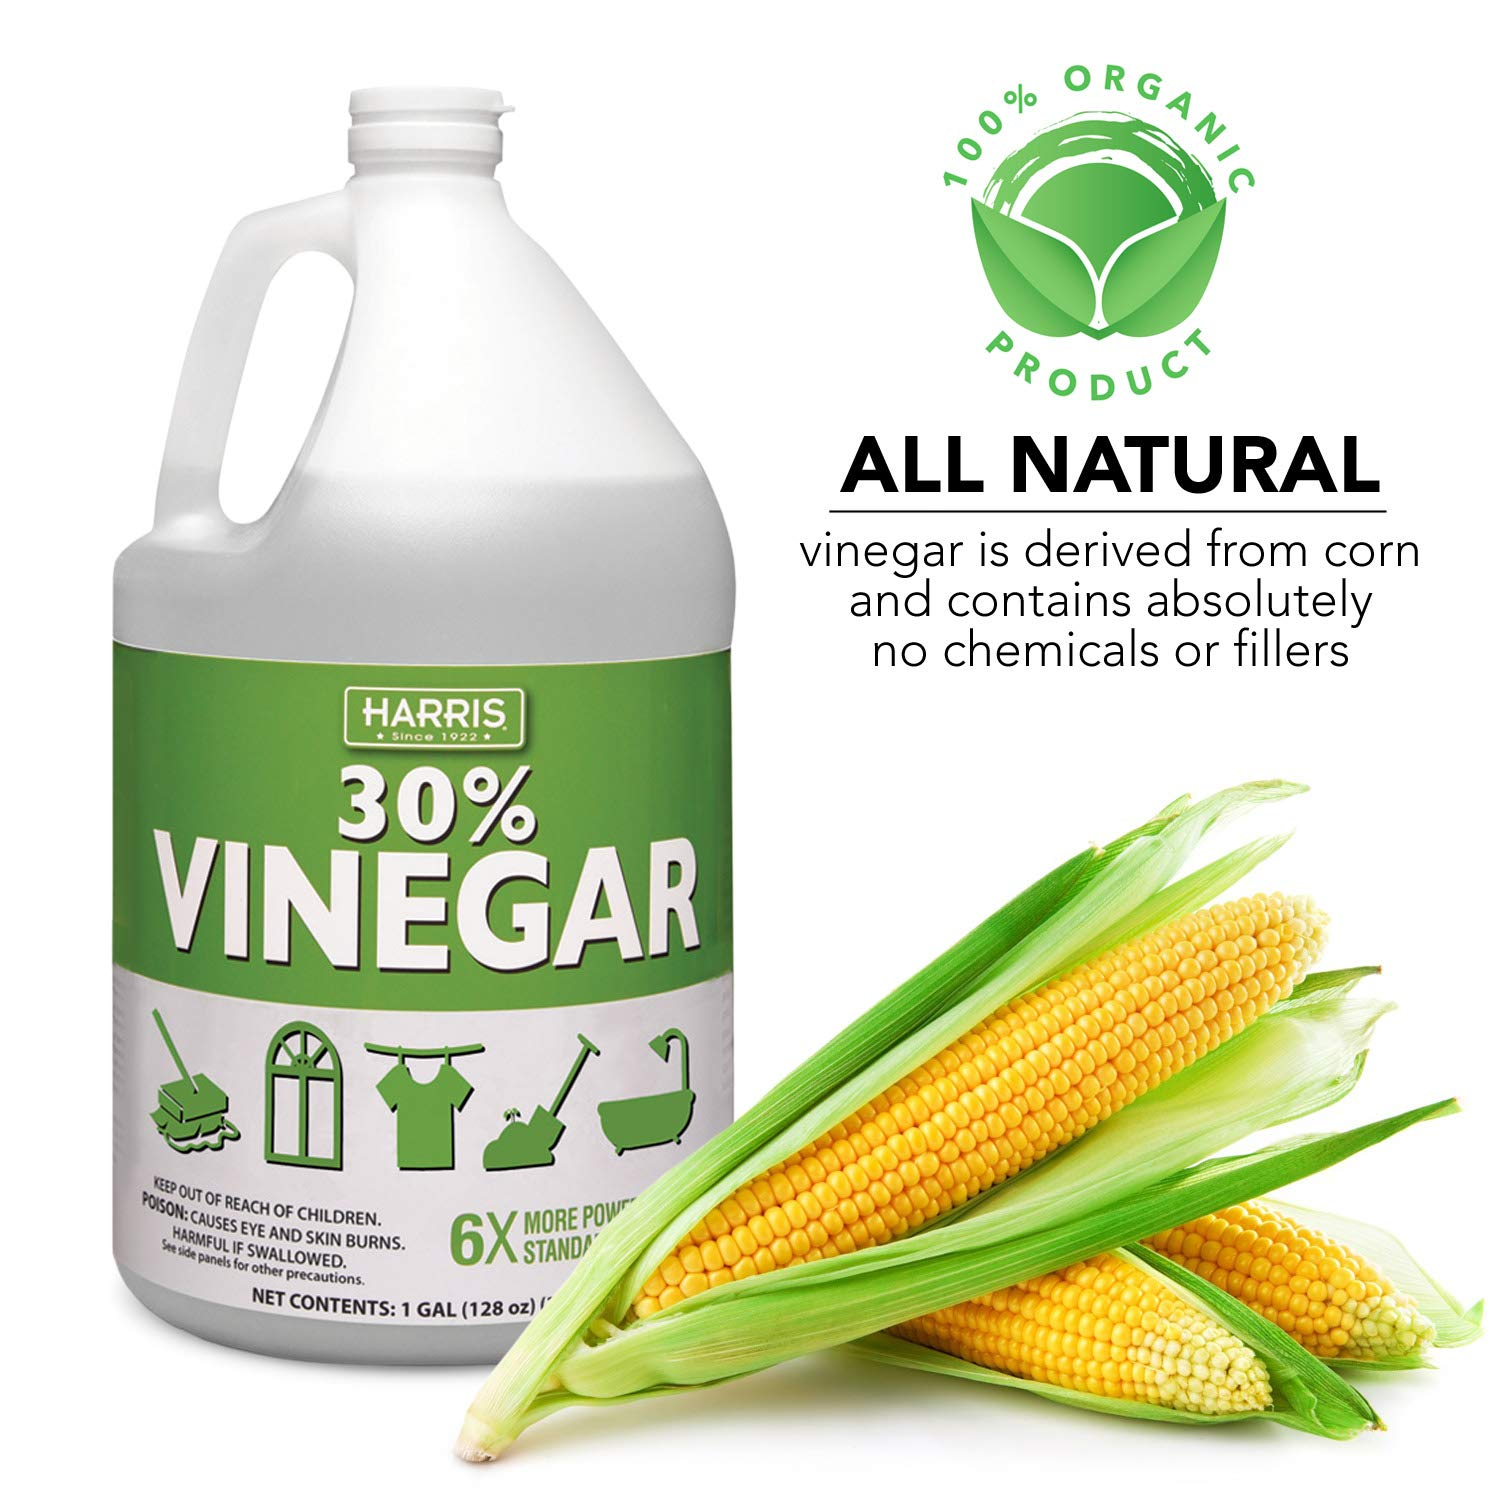 Harris 30% Vinegar, Extra Strength with Trigger Sprayer Included, Gallon by Harris (Image #3)